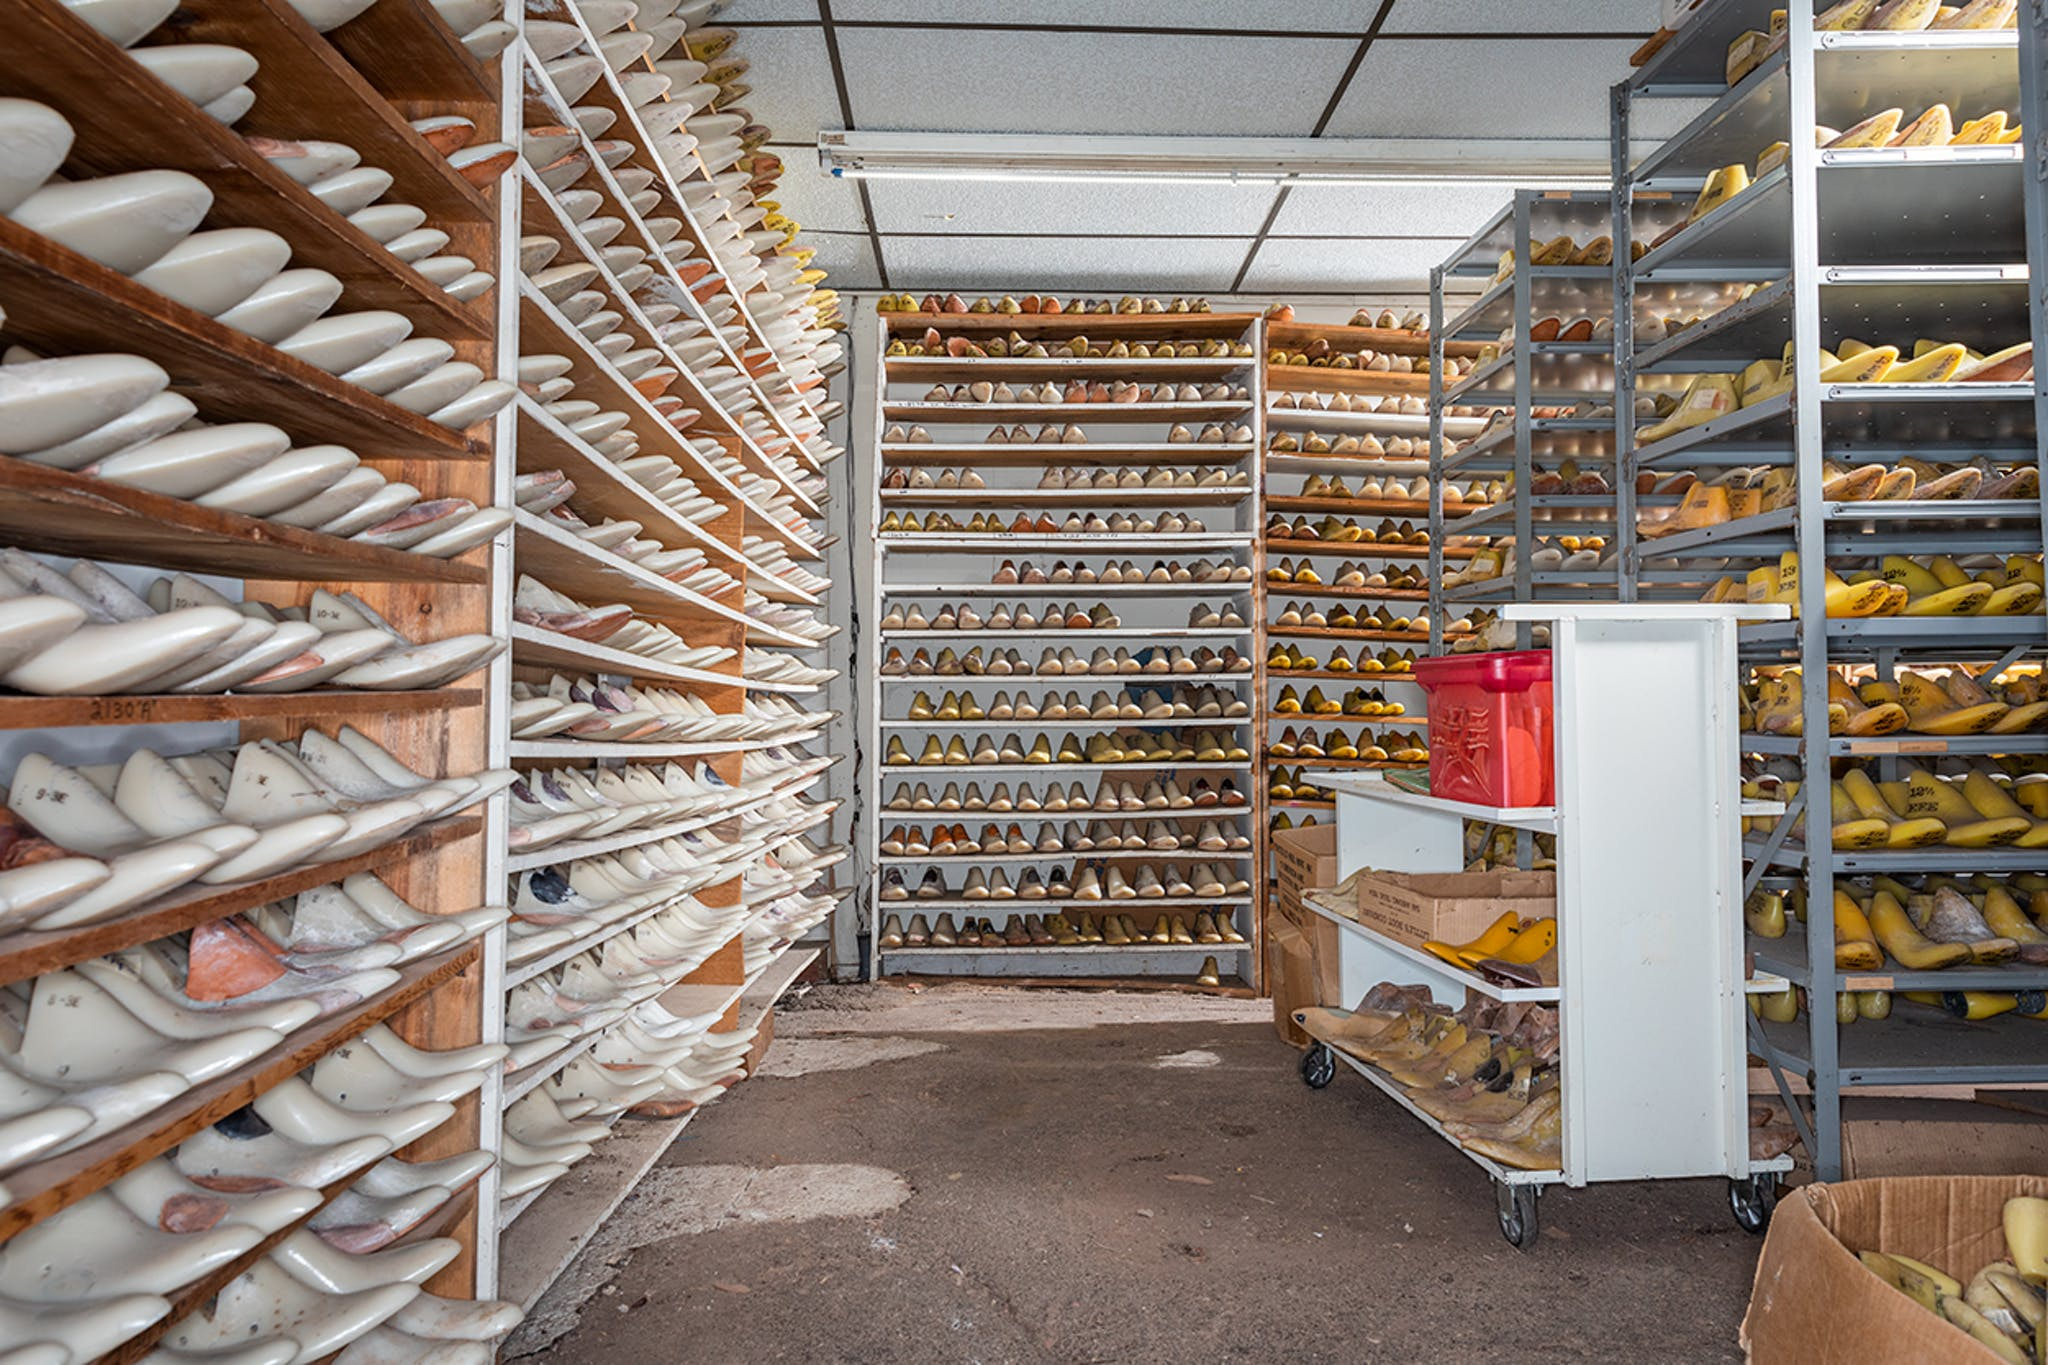 The last room, where the customized forms belonging to hundreds of individual Little's customers are stored for future use.